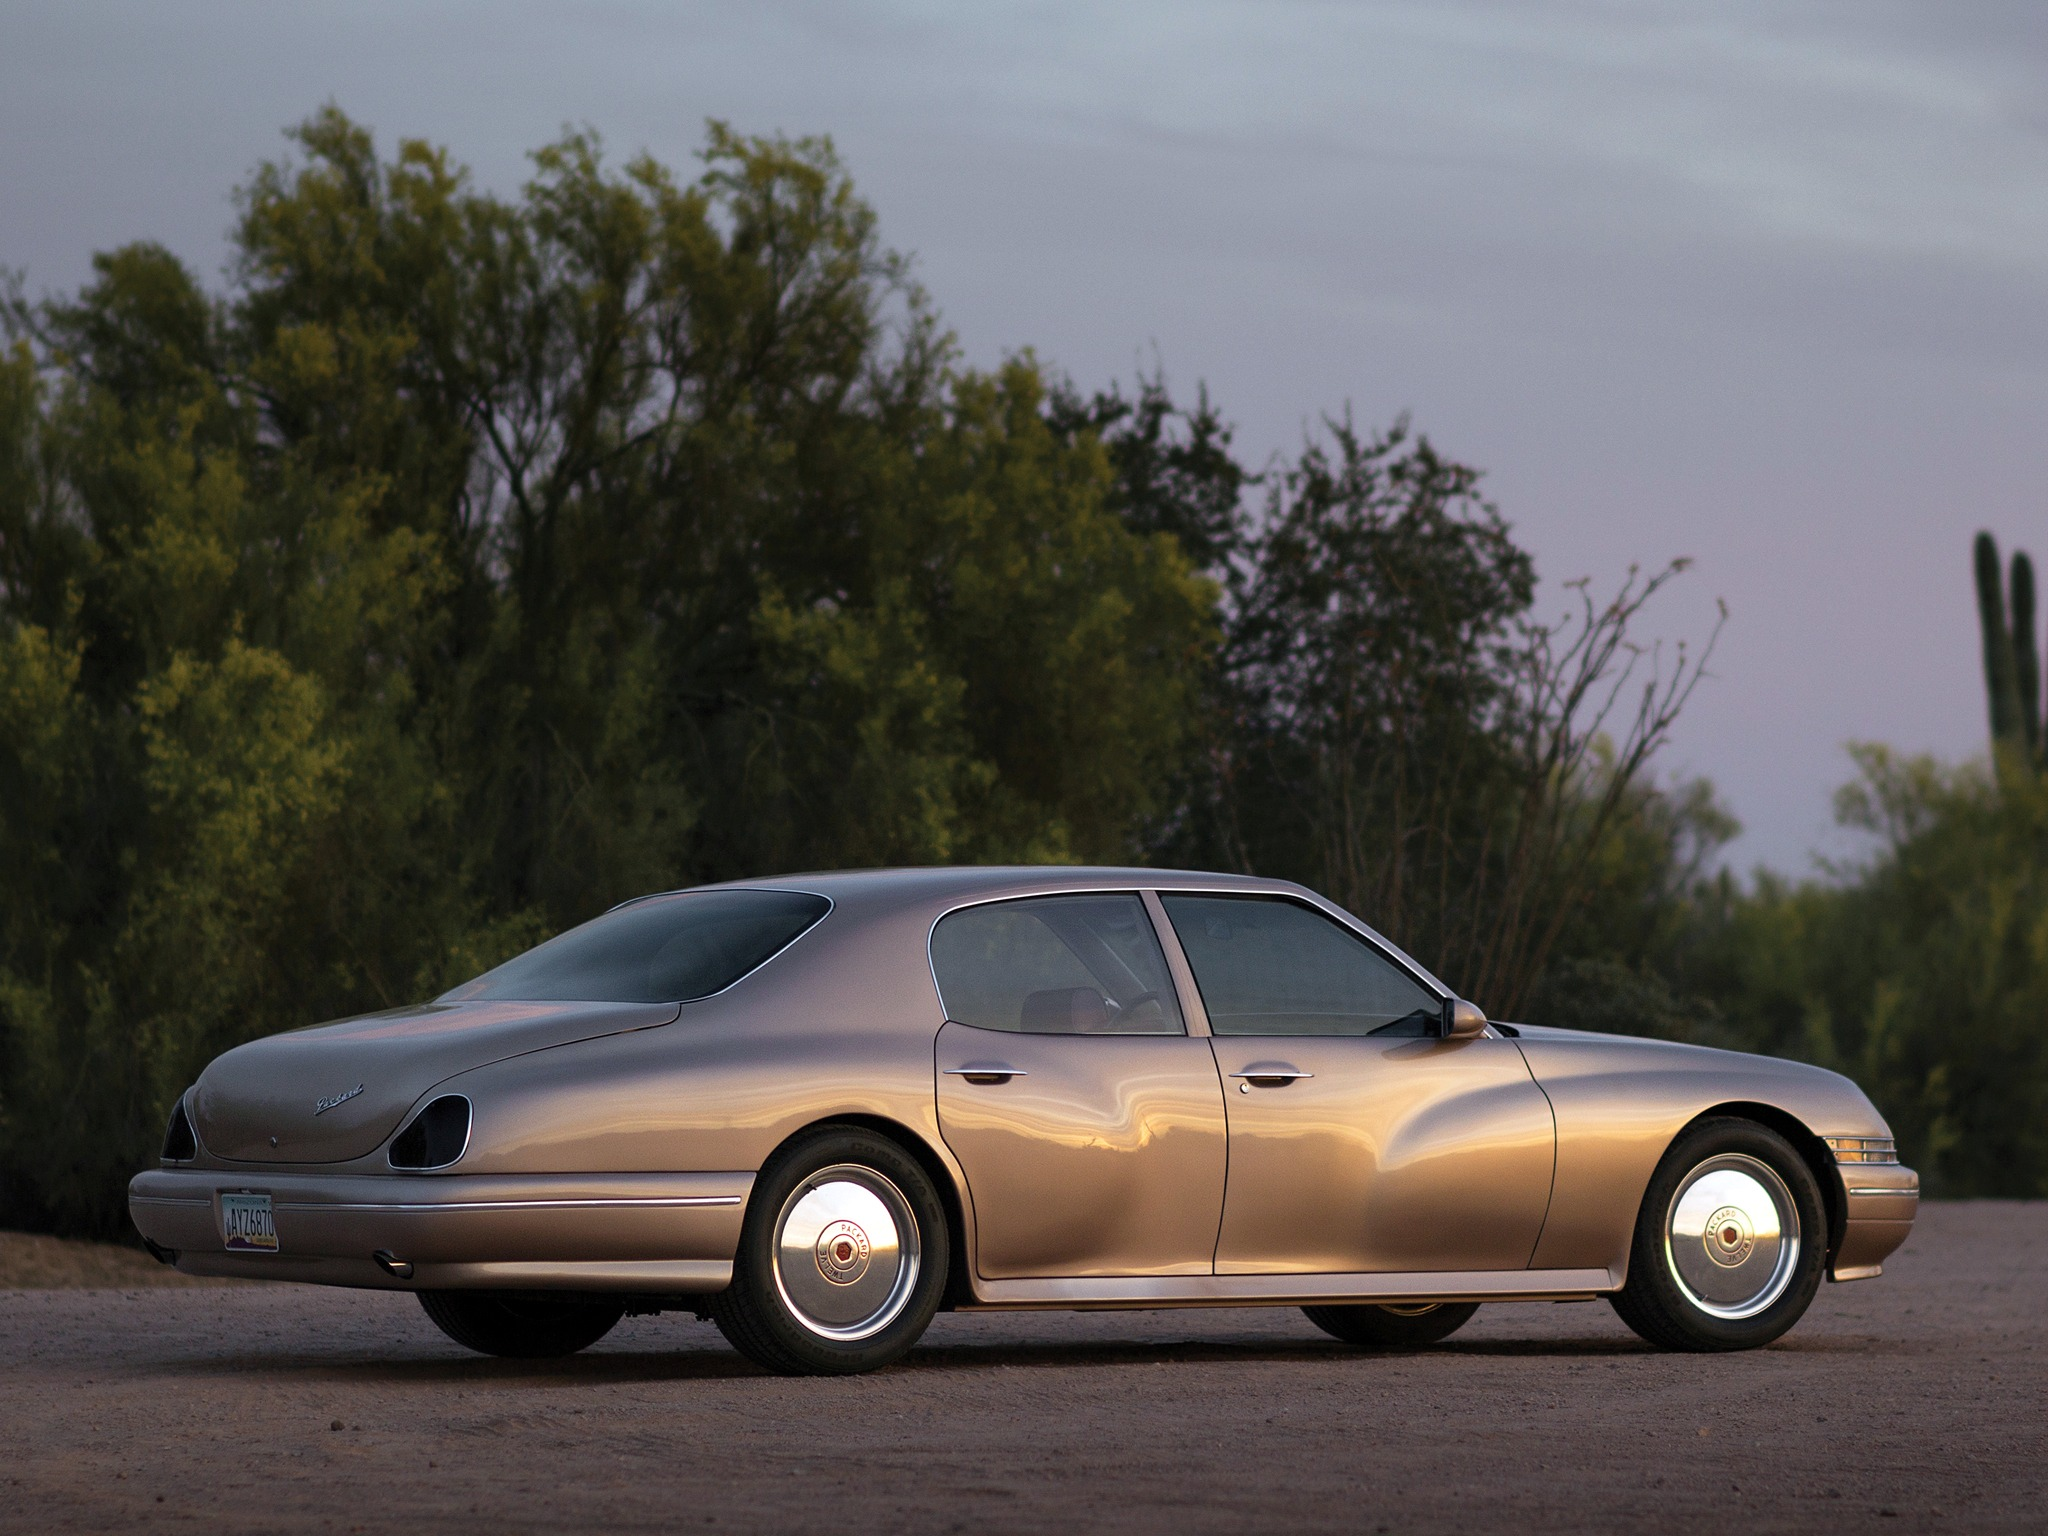 Packard Twelve Concept 1999 Old Concept Cars HD Wallpapers Download free images and photos [musssic.tk]